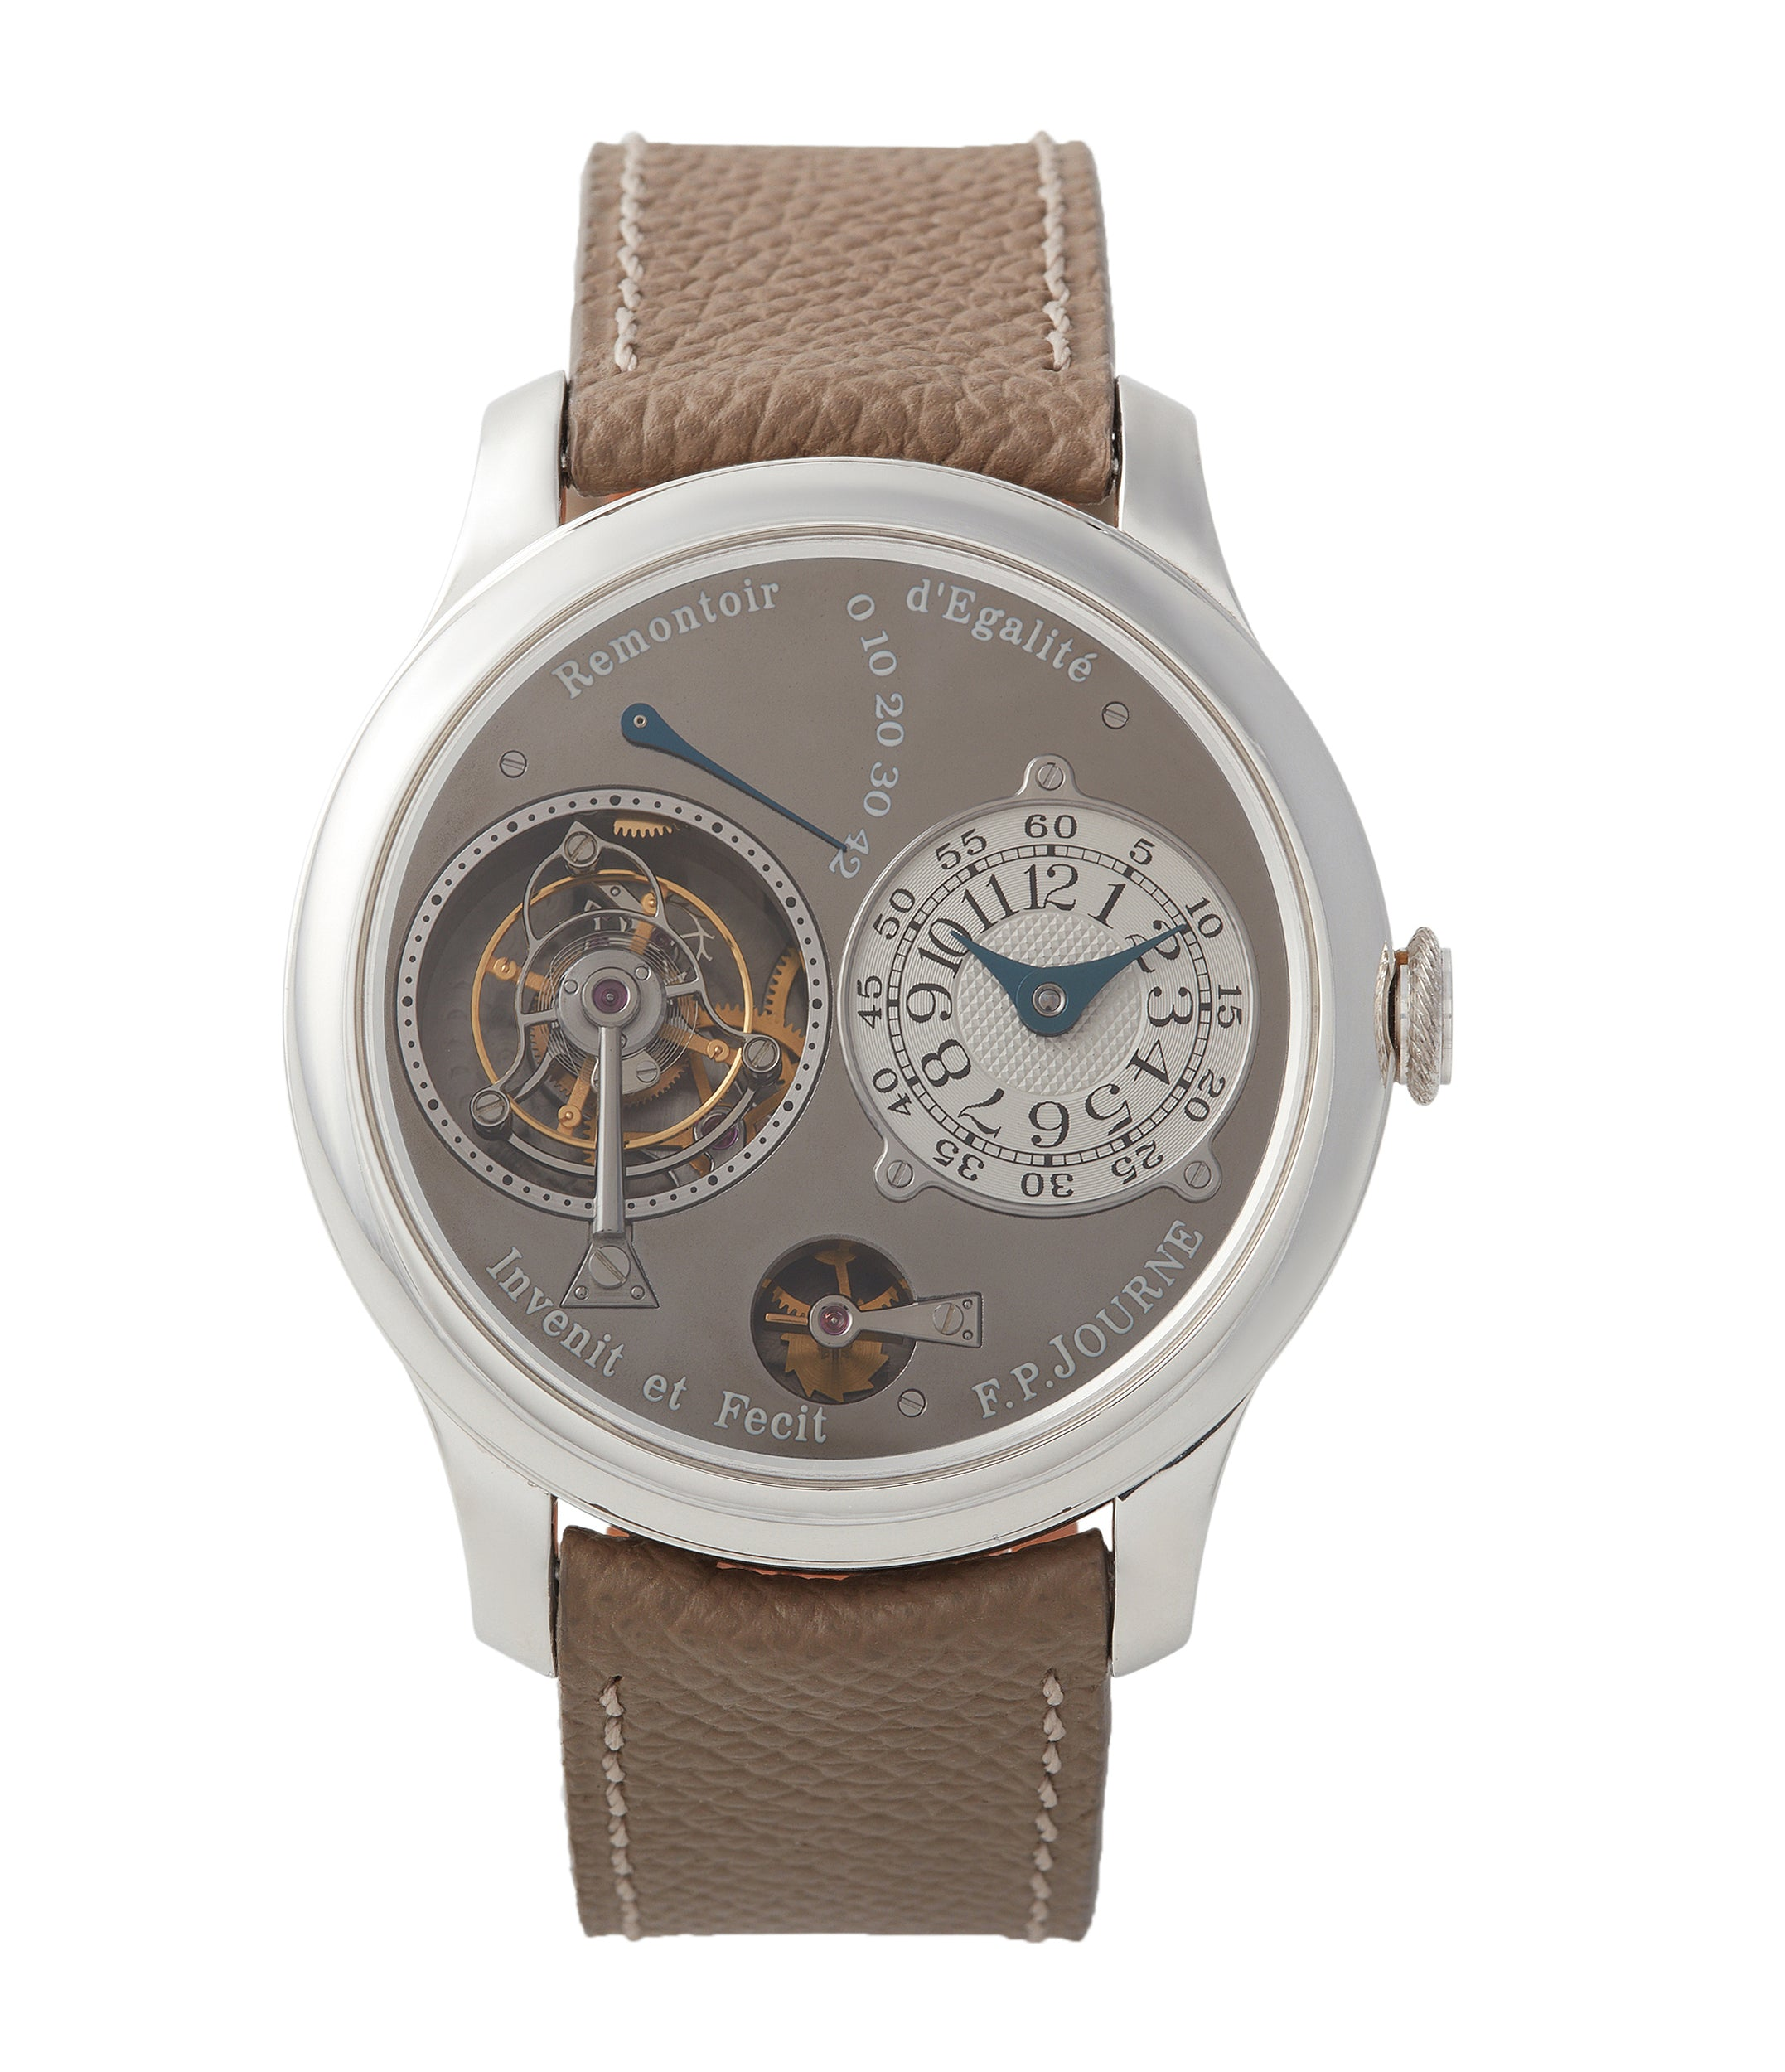 Buy F. P. Journe Tourbillon Remontoire Souverain rhutenium dial brass movement pre-owned watch at A Collected Man London specialist independent watchmakers